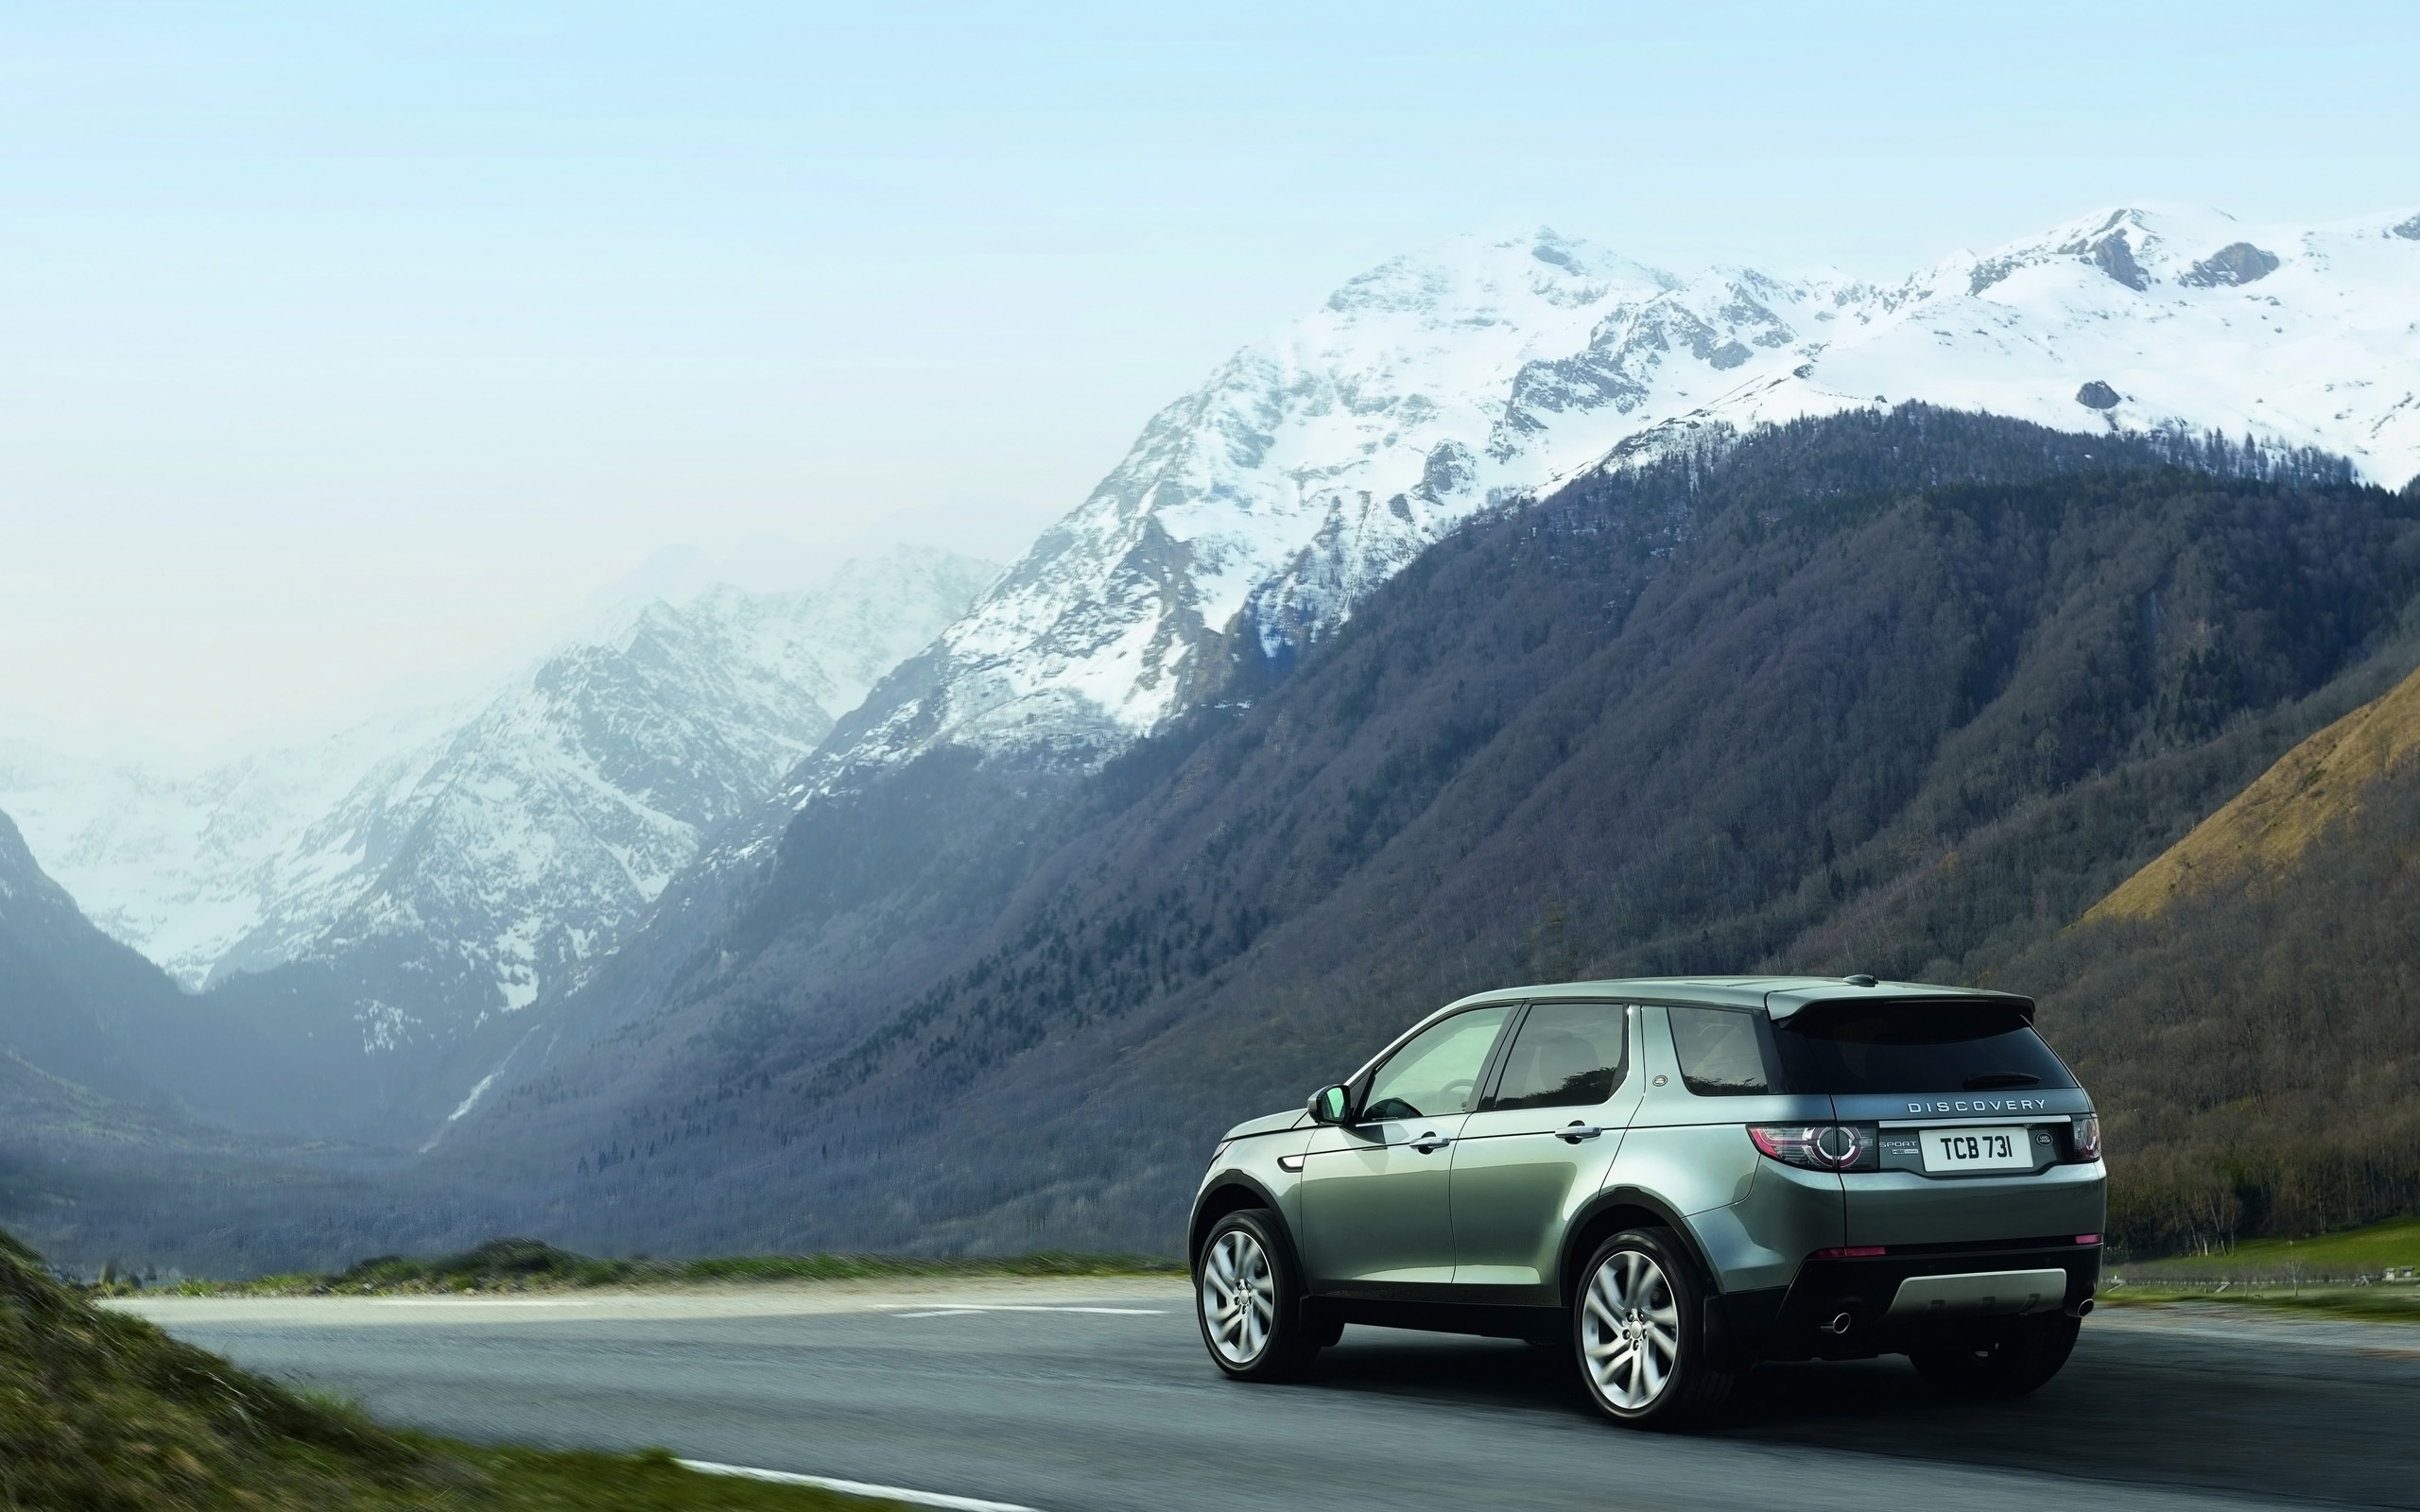 Black Range Rover Sport Wallpaper: 2015 Land Rover Discovery Sport Motion Rear Angle